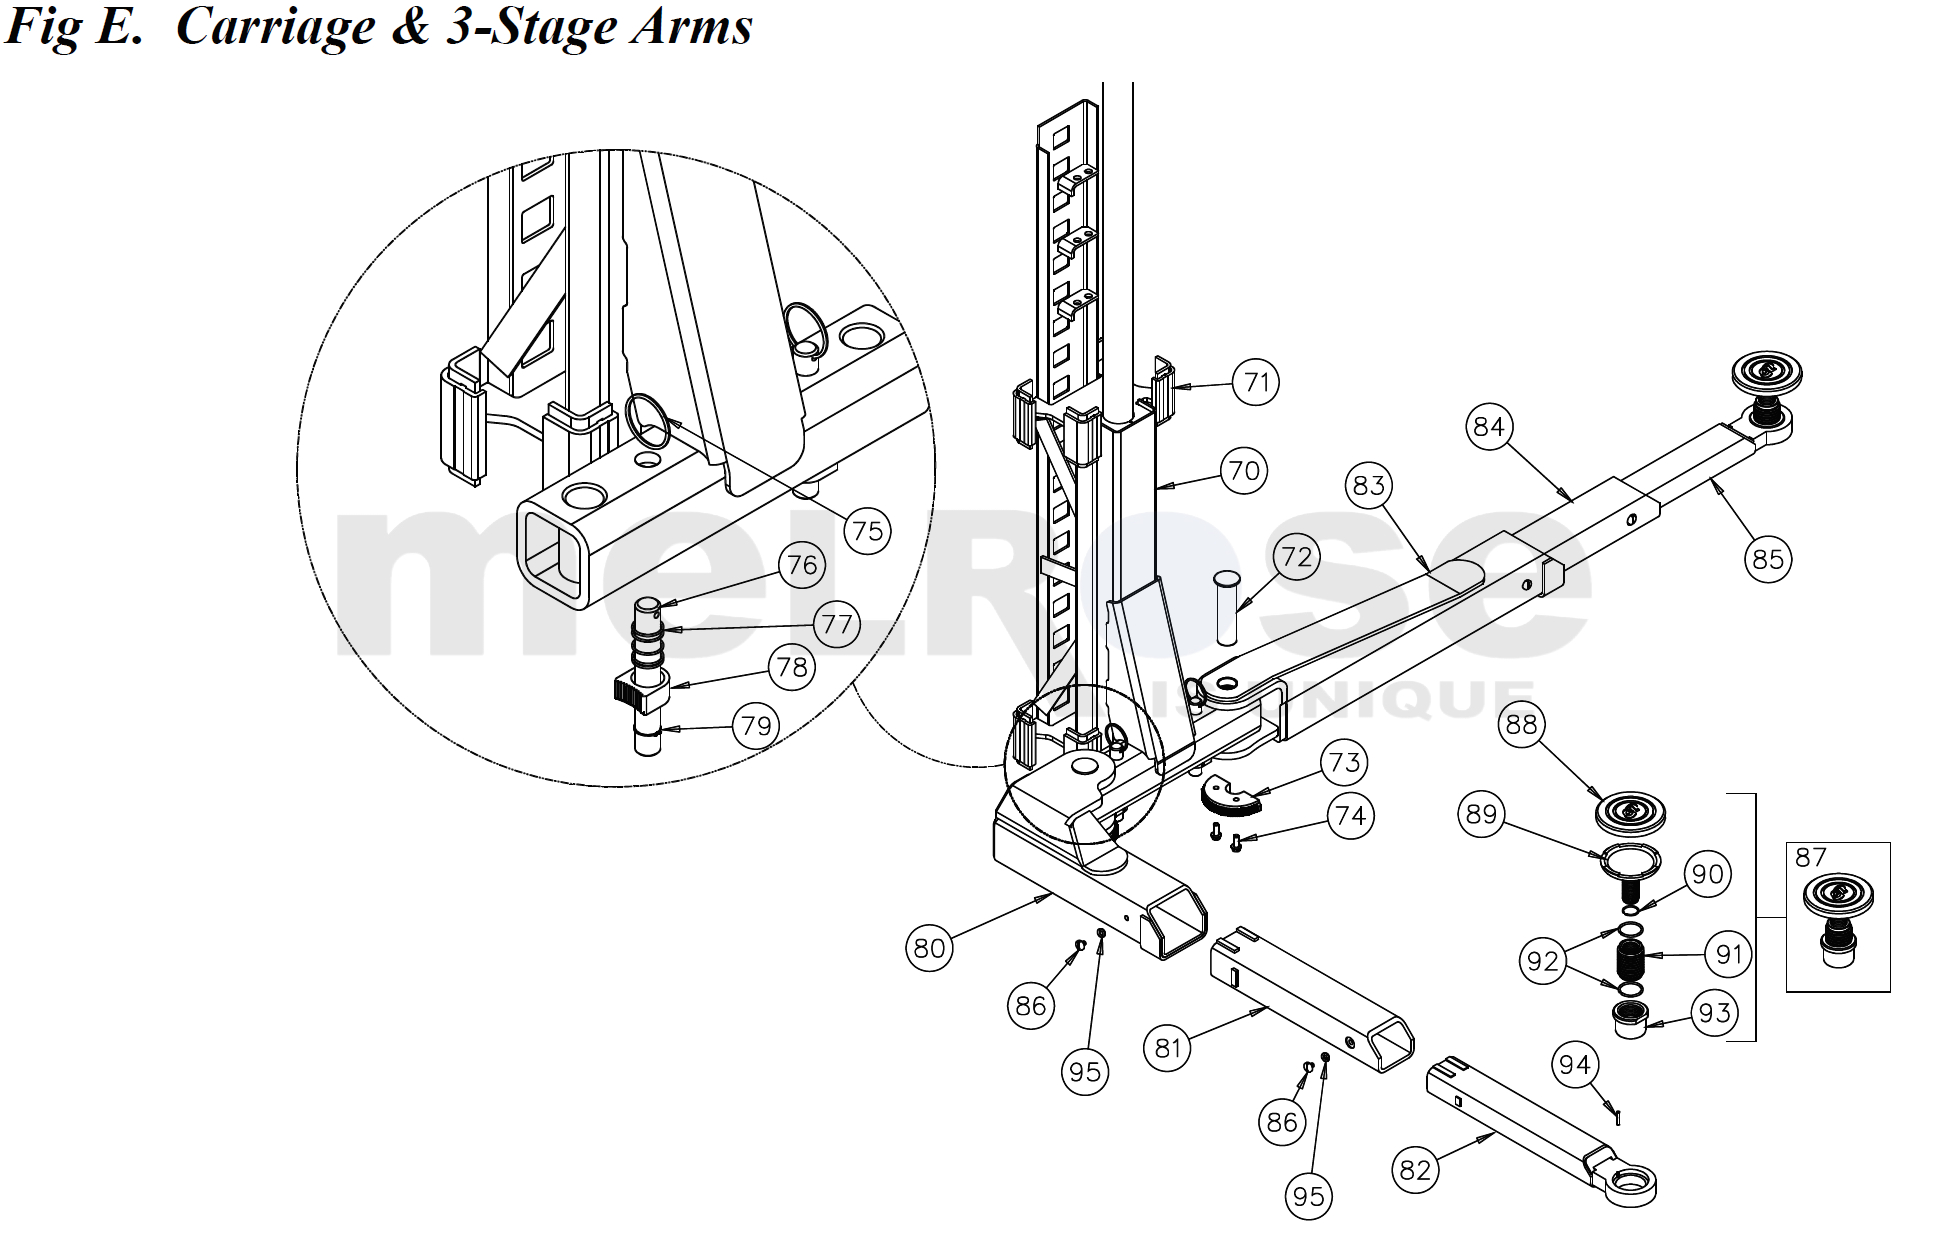 cl9-carriage-and-3-stage-arm-diagram-marked.jpg